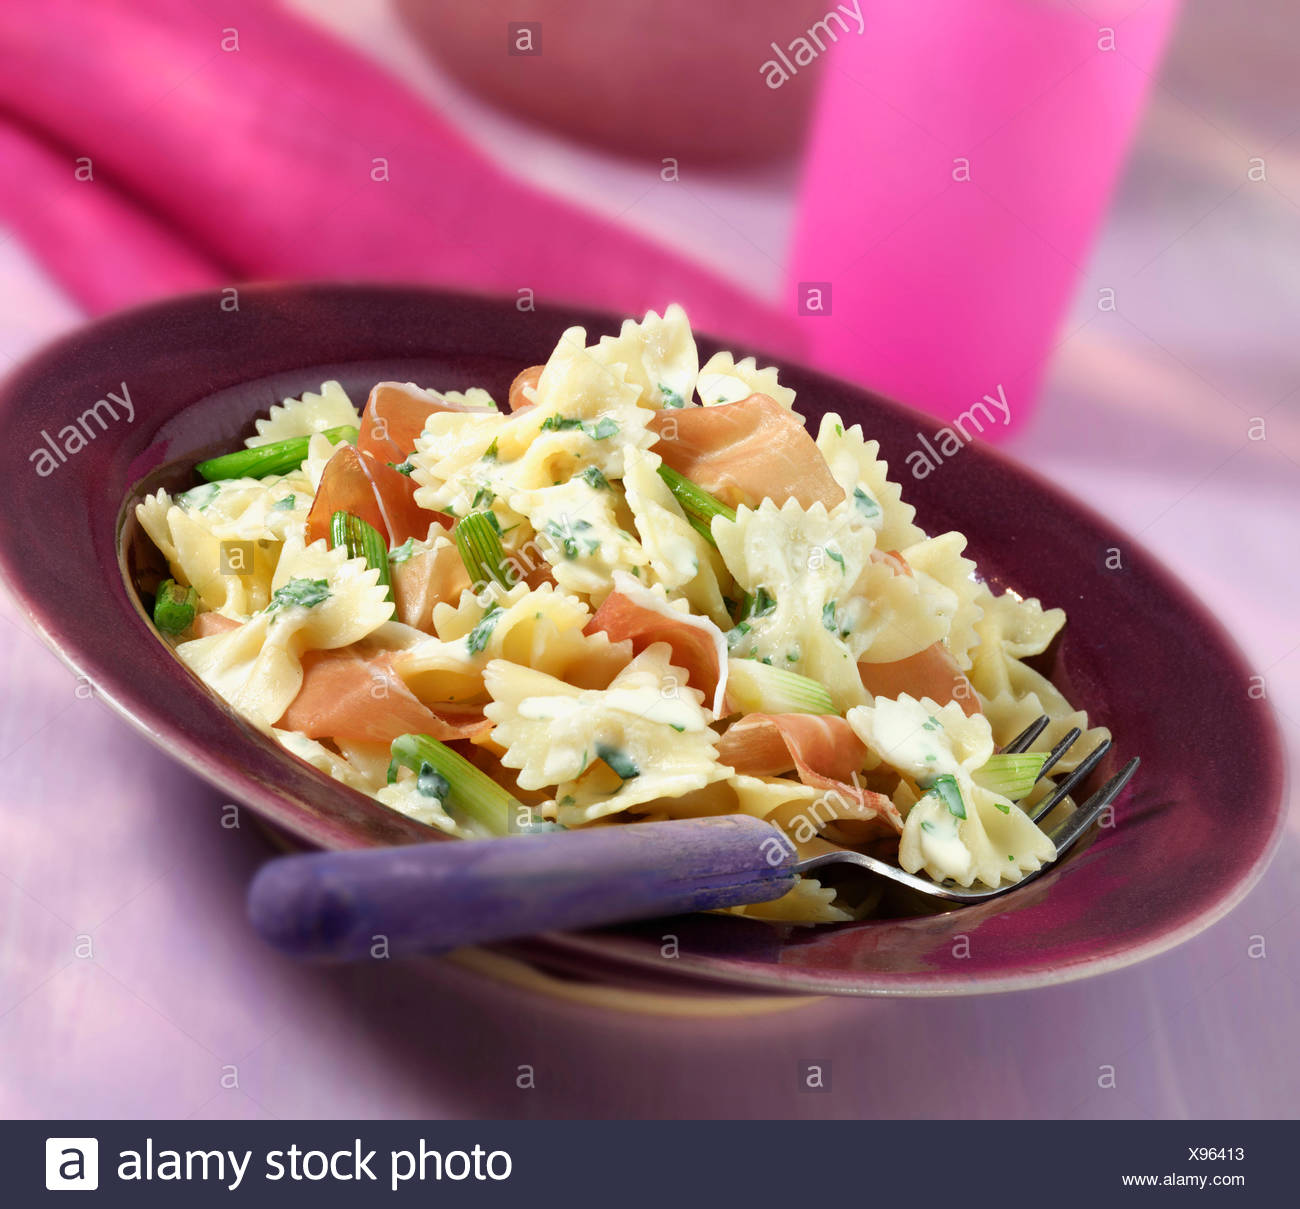 Plate Of Homemade Farfalle With Ham And Onion - Stock Image